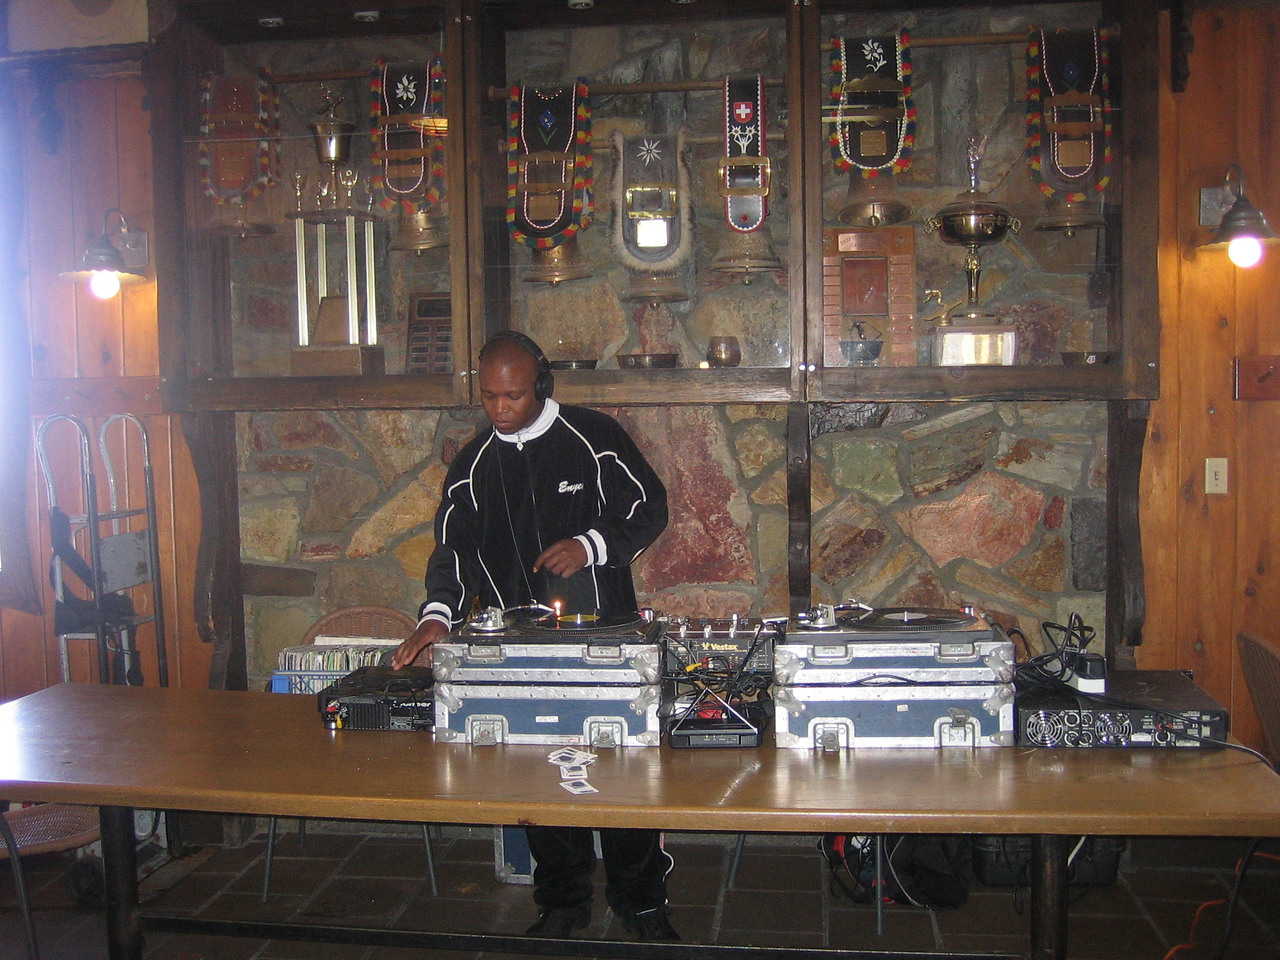 From 11am to 2pm we had DJ Vicious Lee spinning in the lodge. Music, Food, Good People....what more could you ask for?